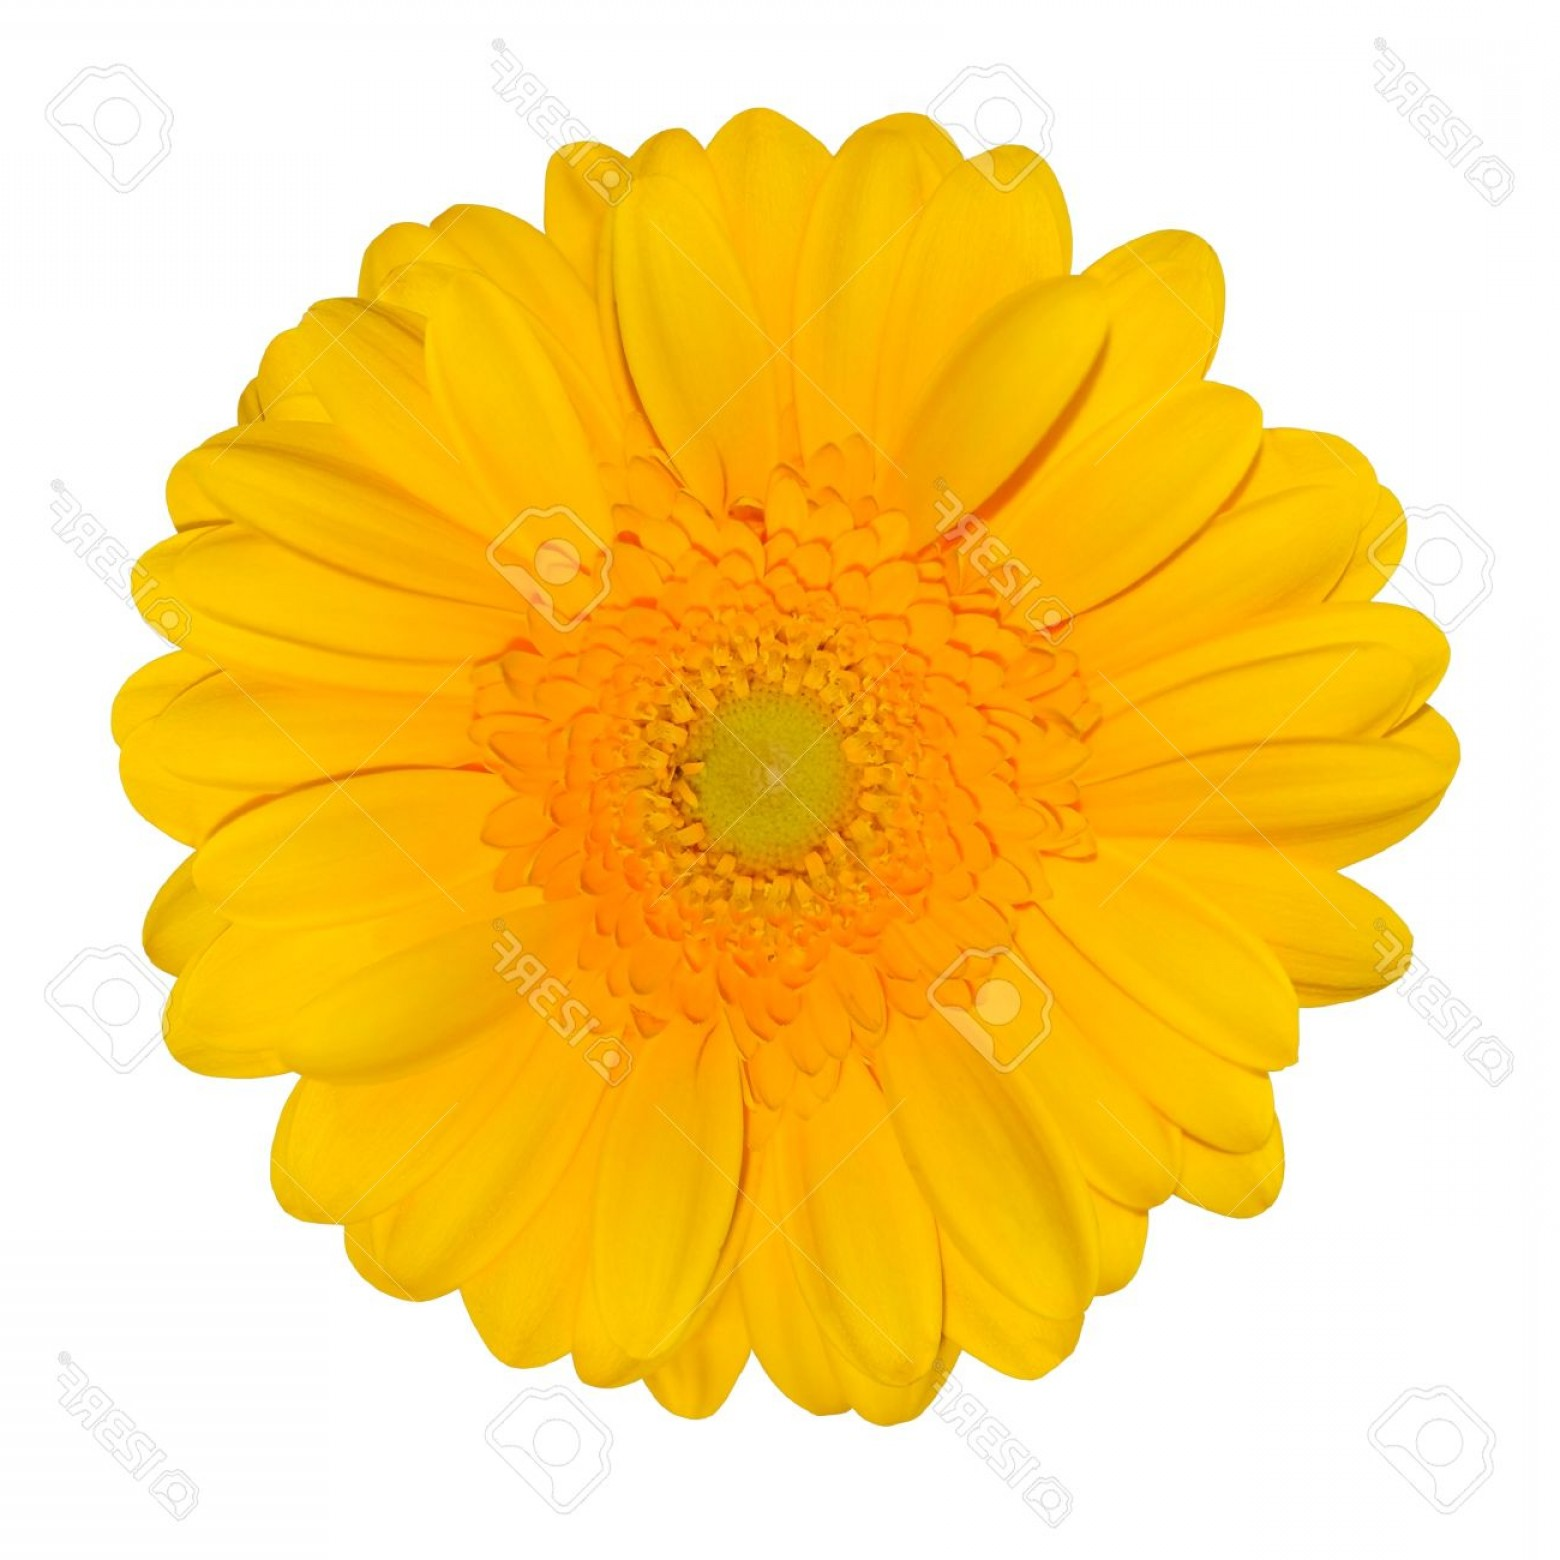 Orange Gerber Daisy Vector: Unique Photoyellow Gerbera Daisy Flower Head Isolated On White Background